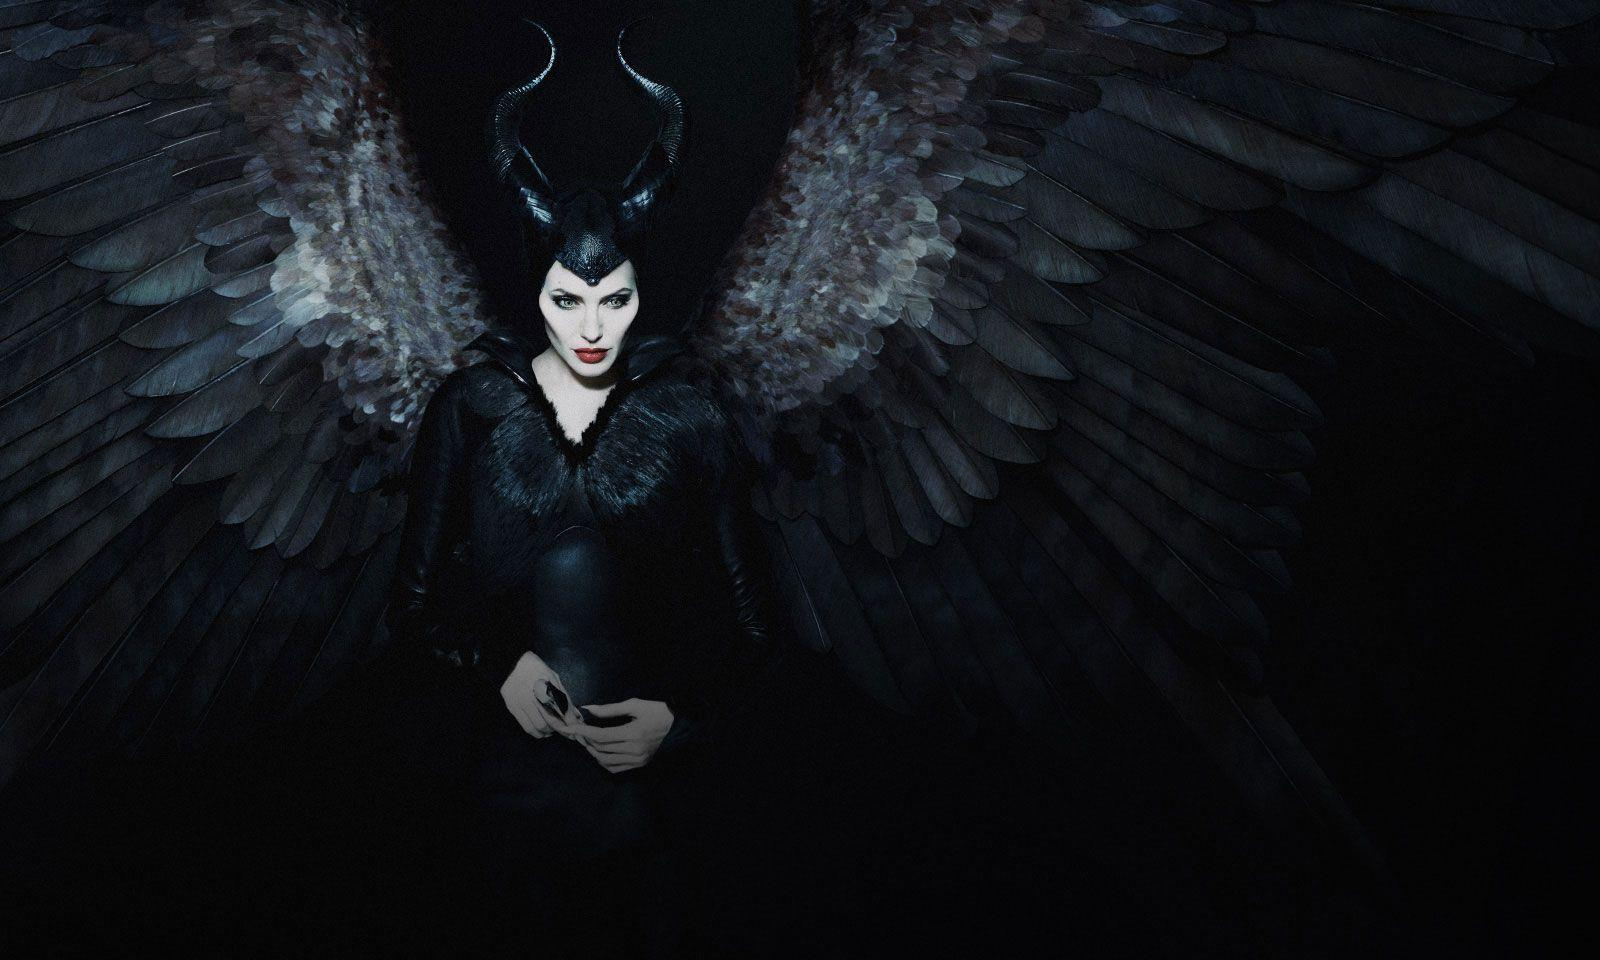 Maleficent 2 Wallpapers Wallpaper Cave